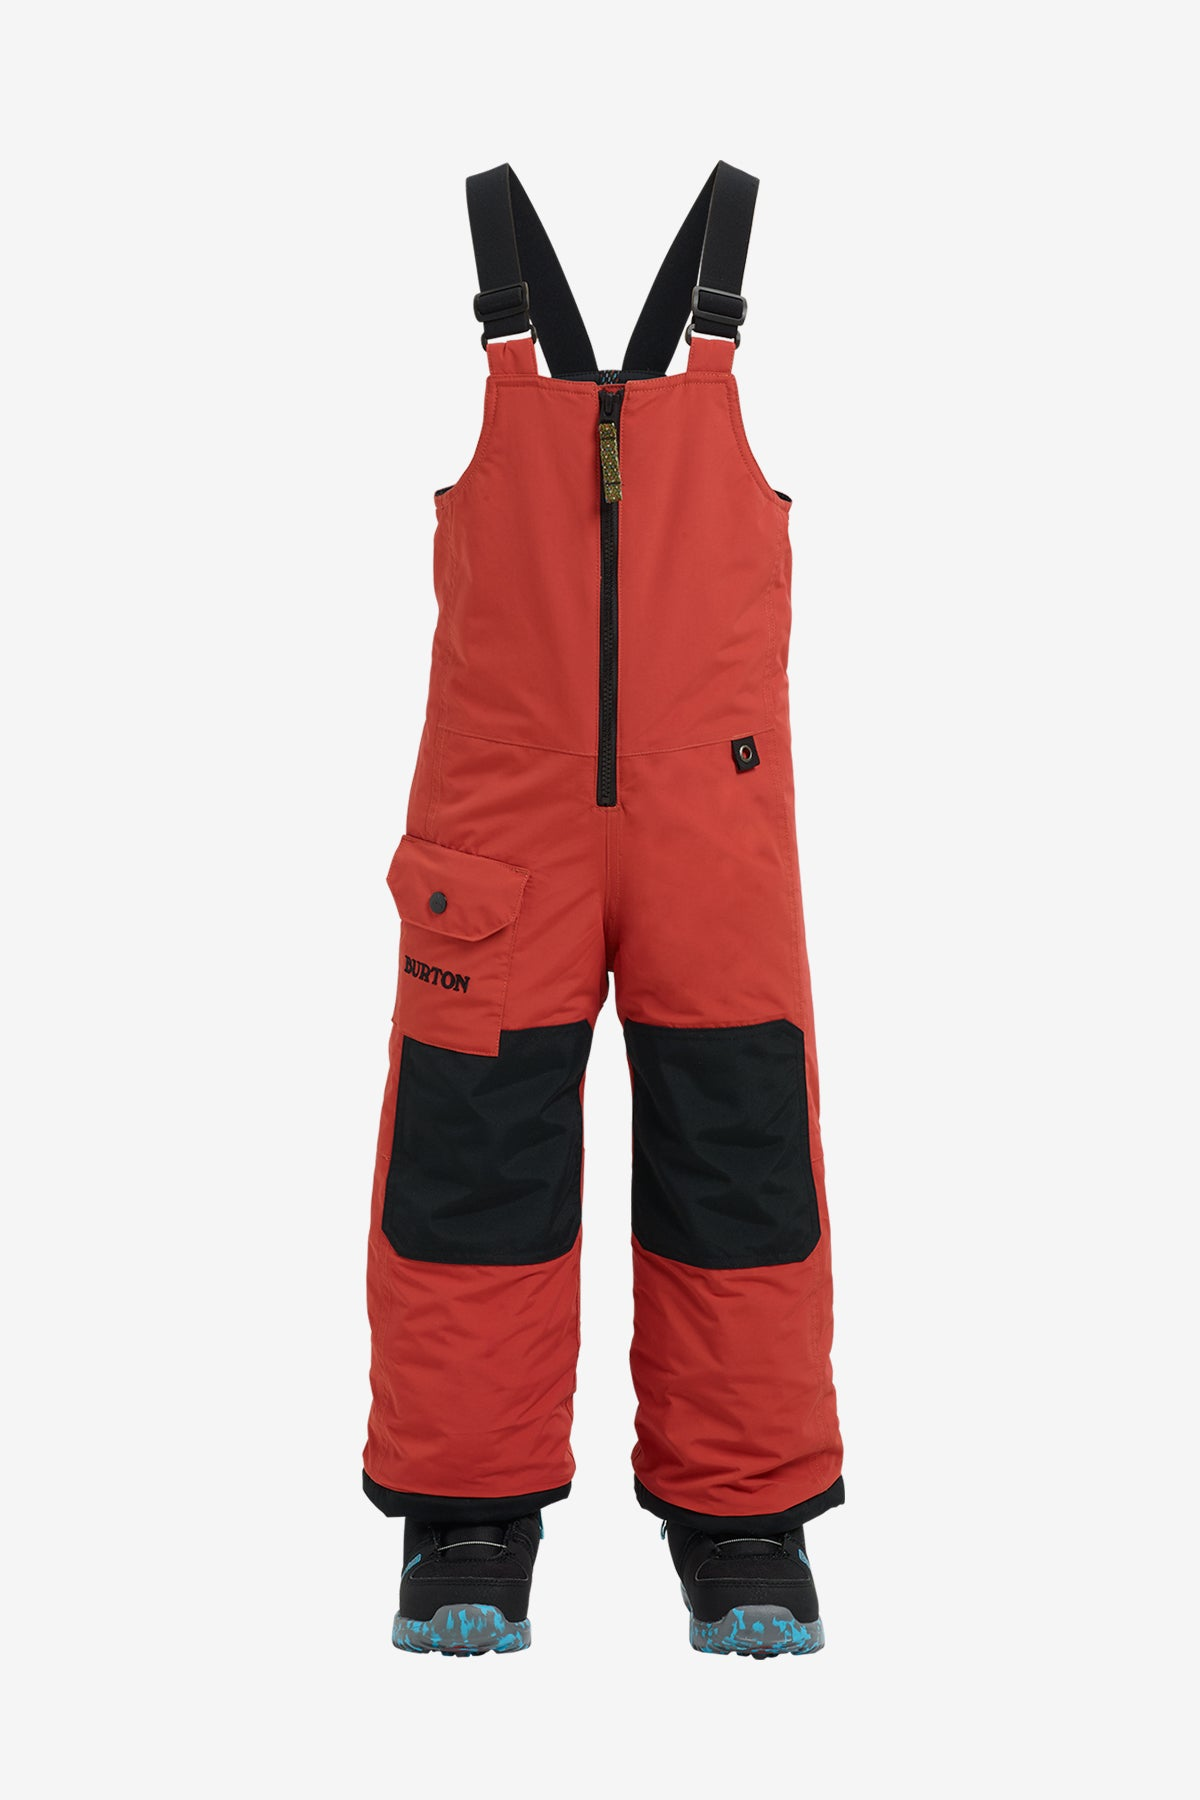 Burton Minishred Maven Bib Pant - Hot Sauce